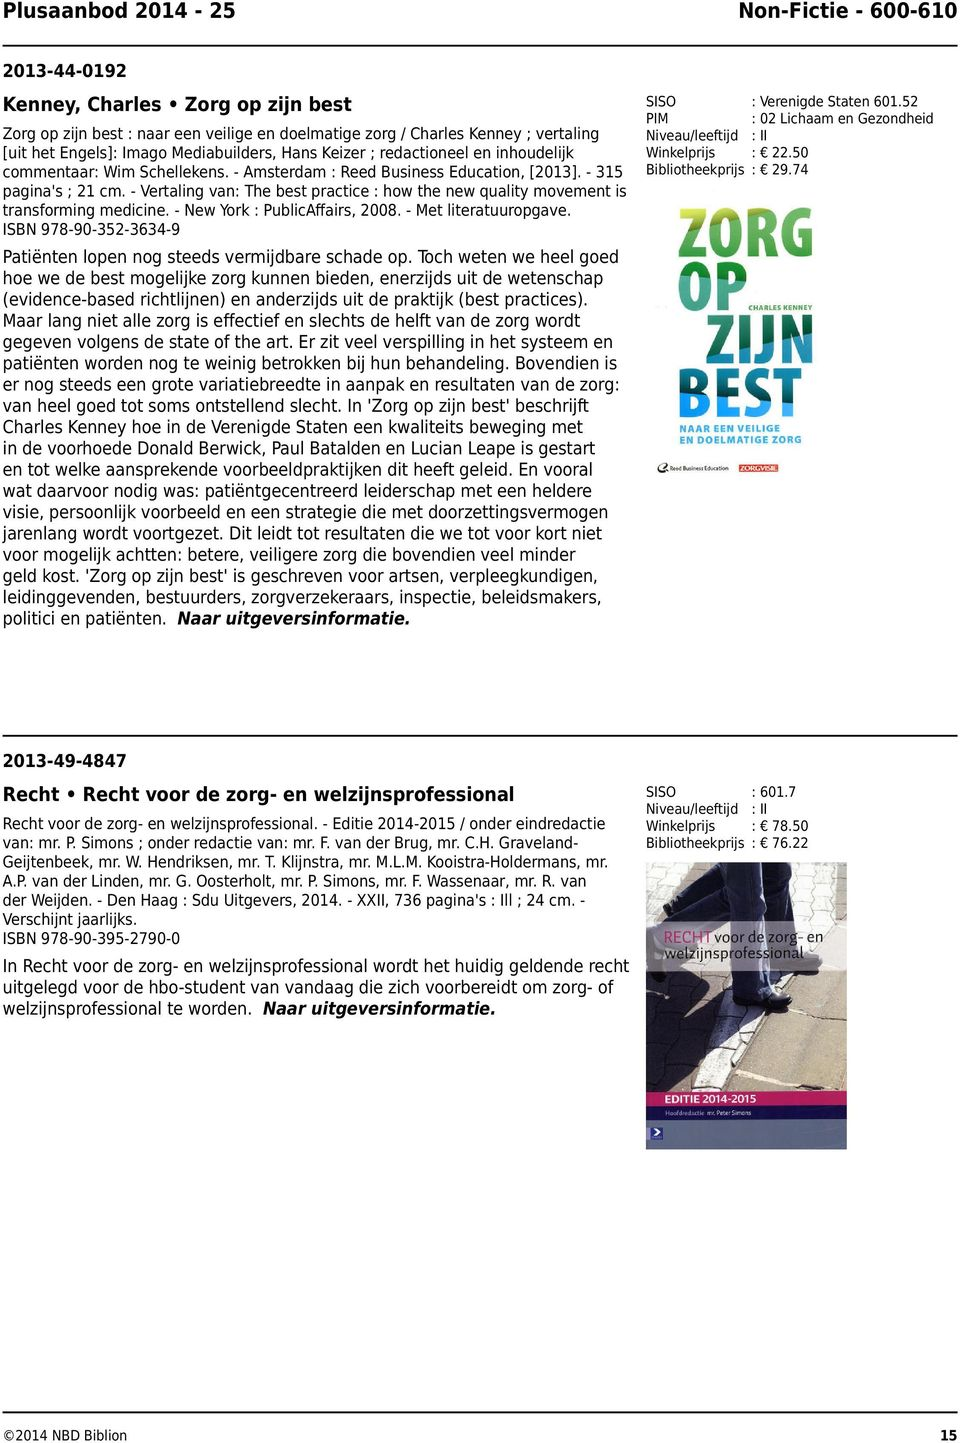 - Vertaling van: The best practice : how the new quality movement is transforming medicine. - New York : PublicAffairs, 2008. - Met literatuuropgave. ISBN 978-90-352-3634-9 : Verenigde Staten 601.